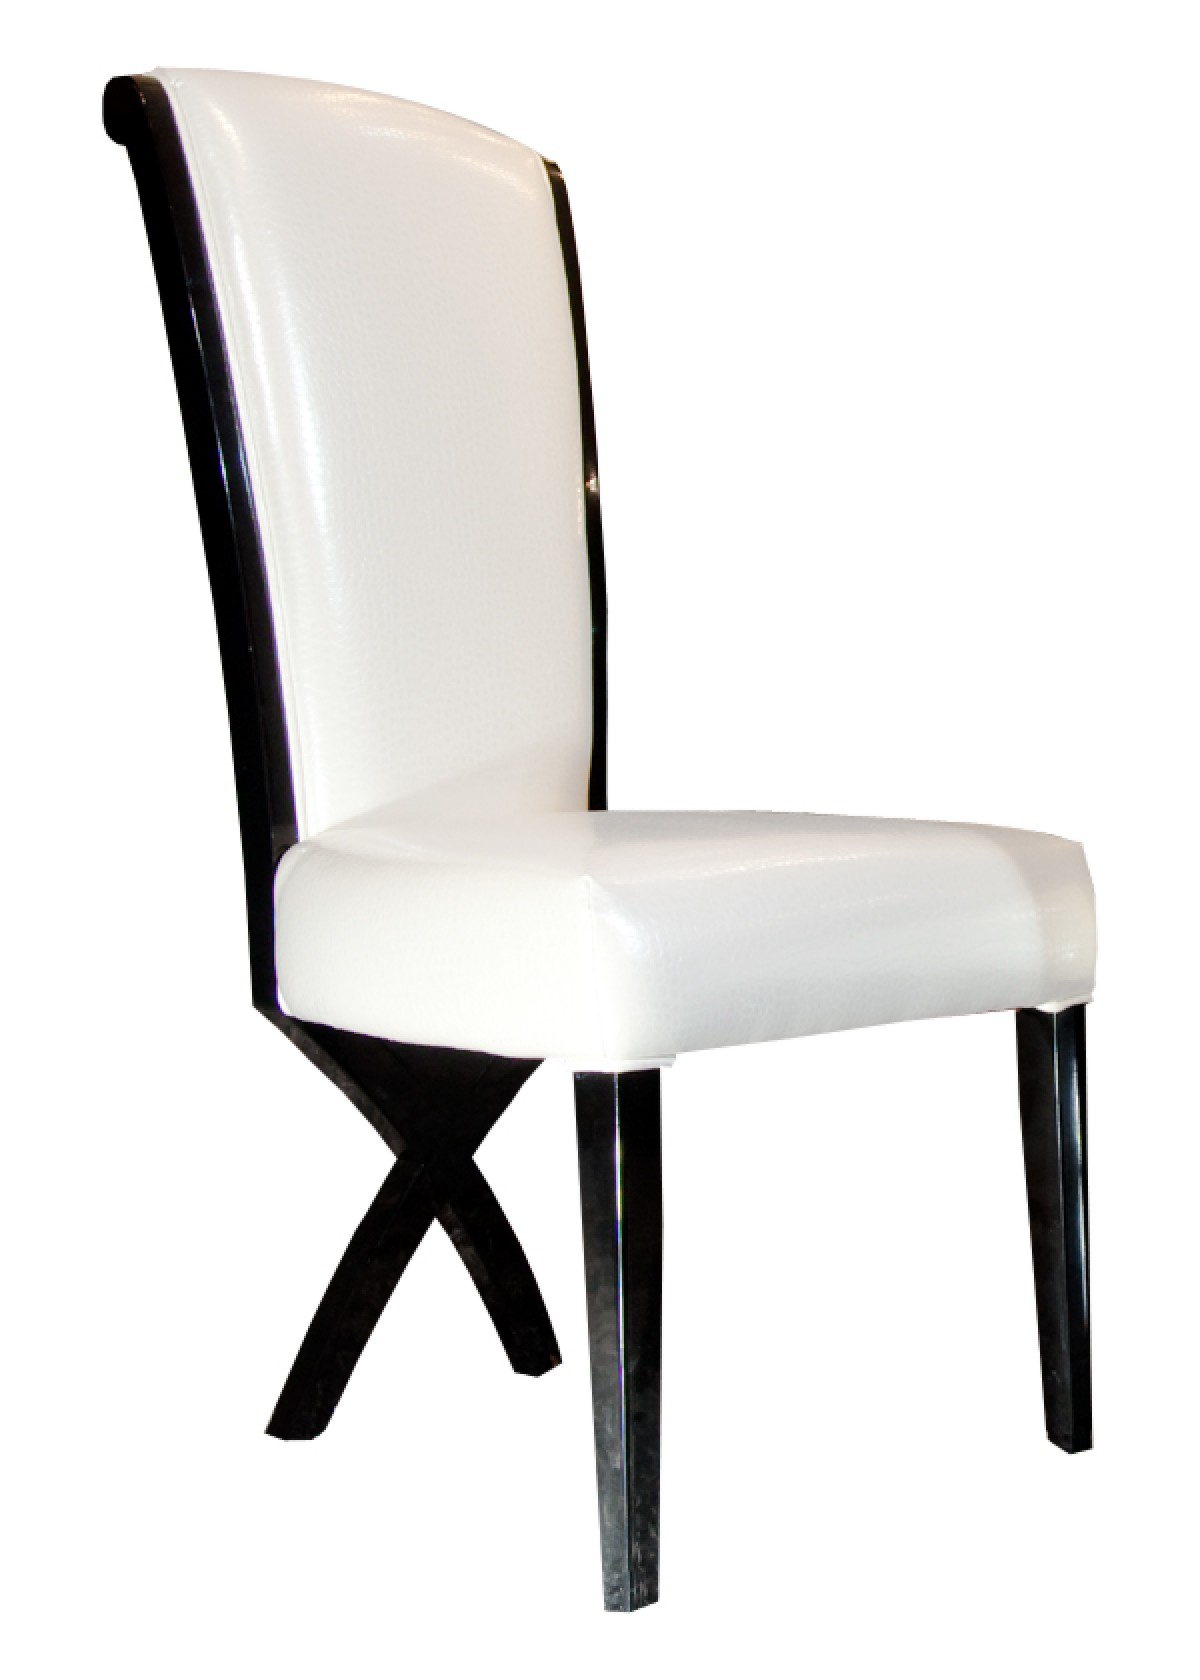 transitional dining chairs chair rental new orleans a andx xena x leg side set of 2